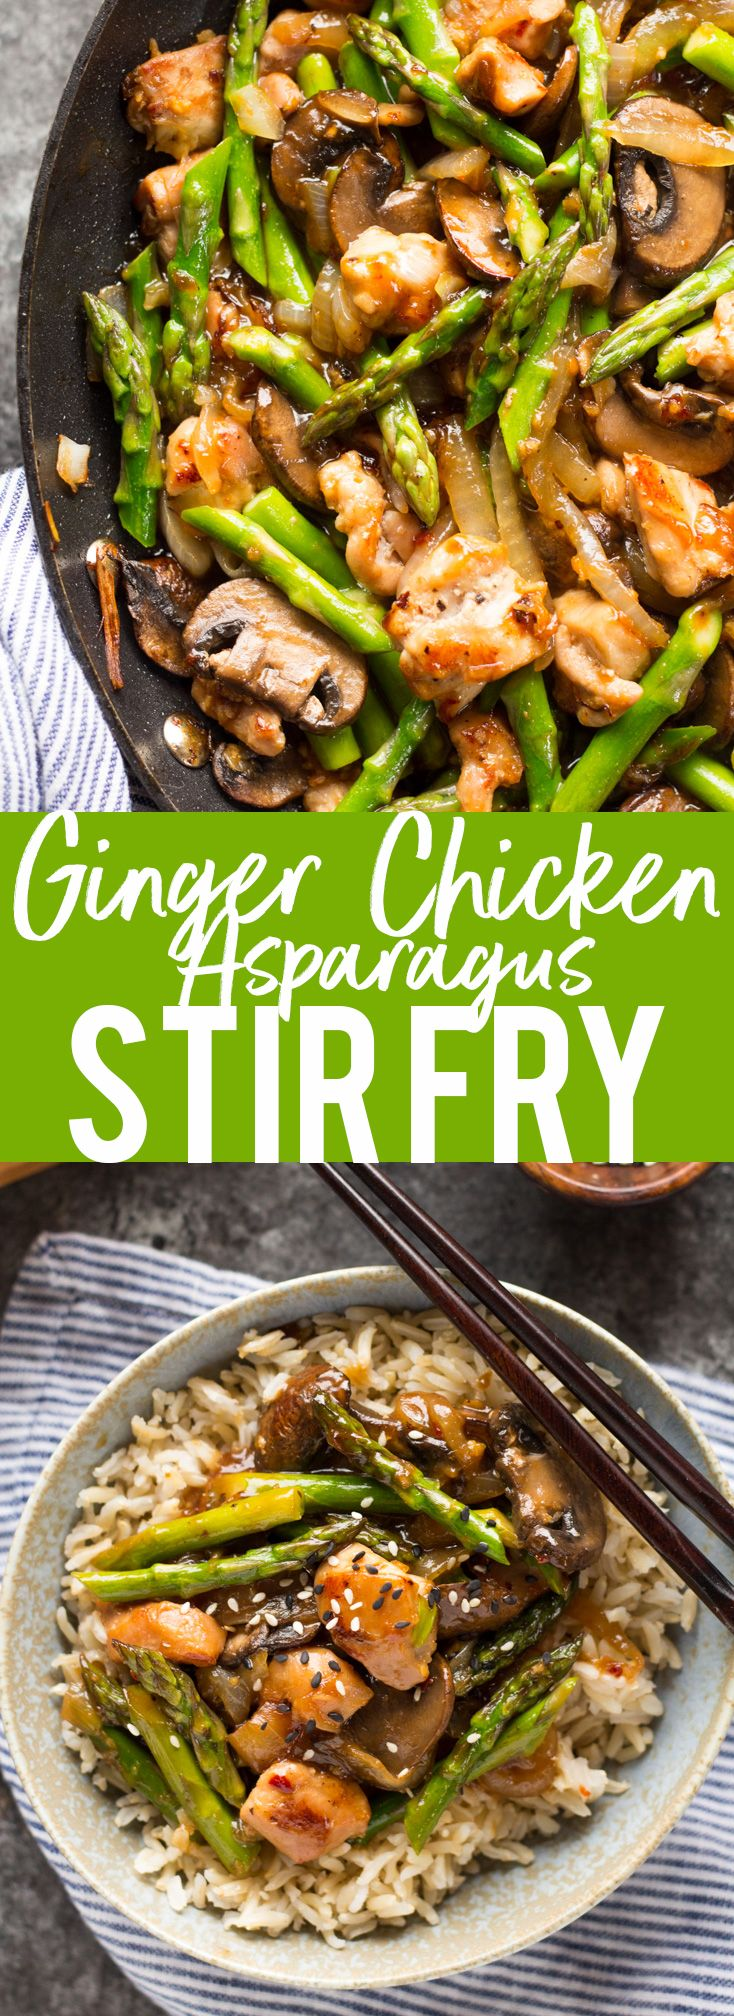 Ginger Chicken Asparagus Stir Fry Recipe Tlbl Asparagus Stir Fry Chicken Asparagus Ginger Chicken